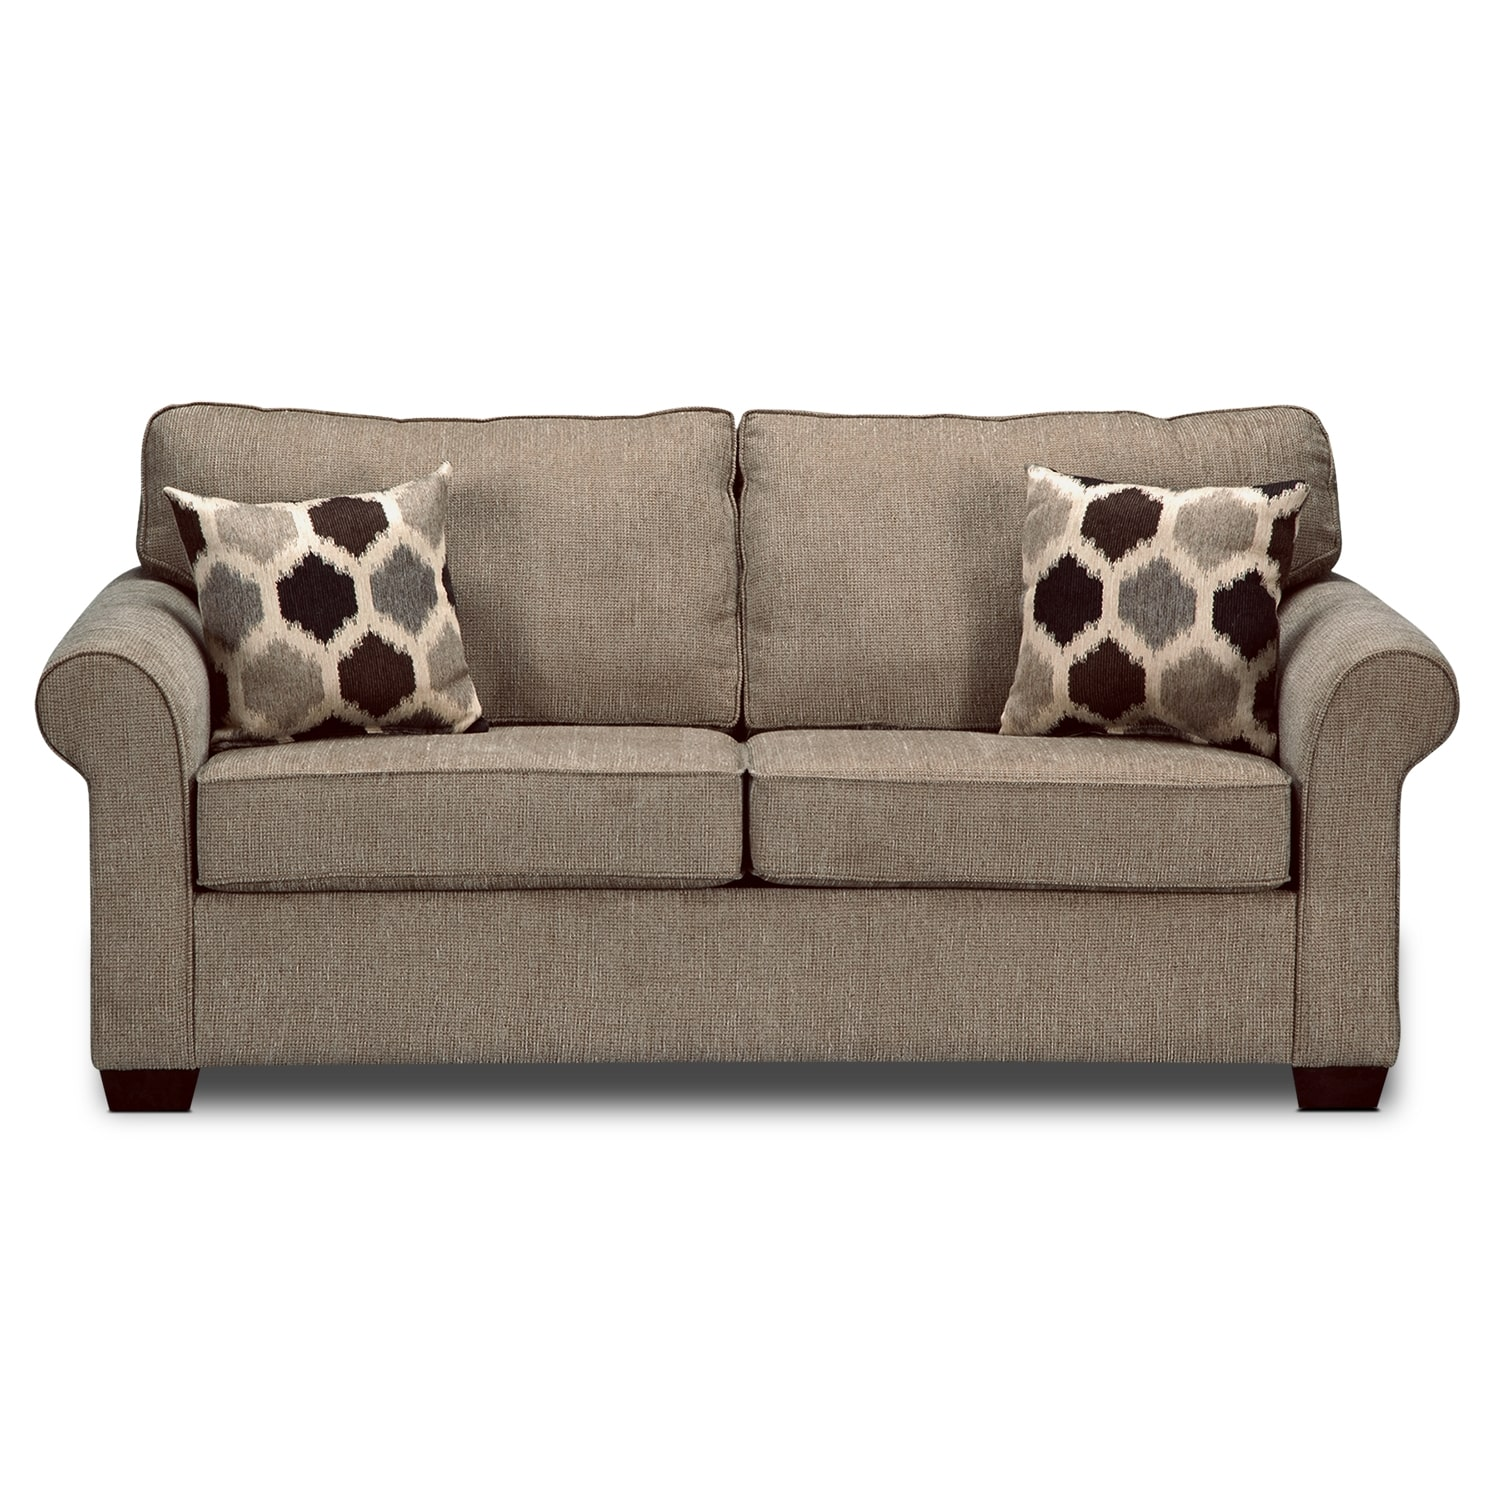 Furnishings for every room online and store furniture sales value city furniture Sofa sleeper loveseat